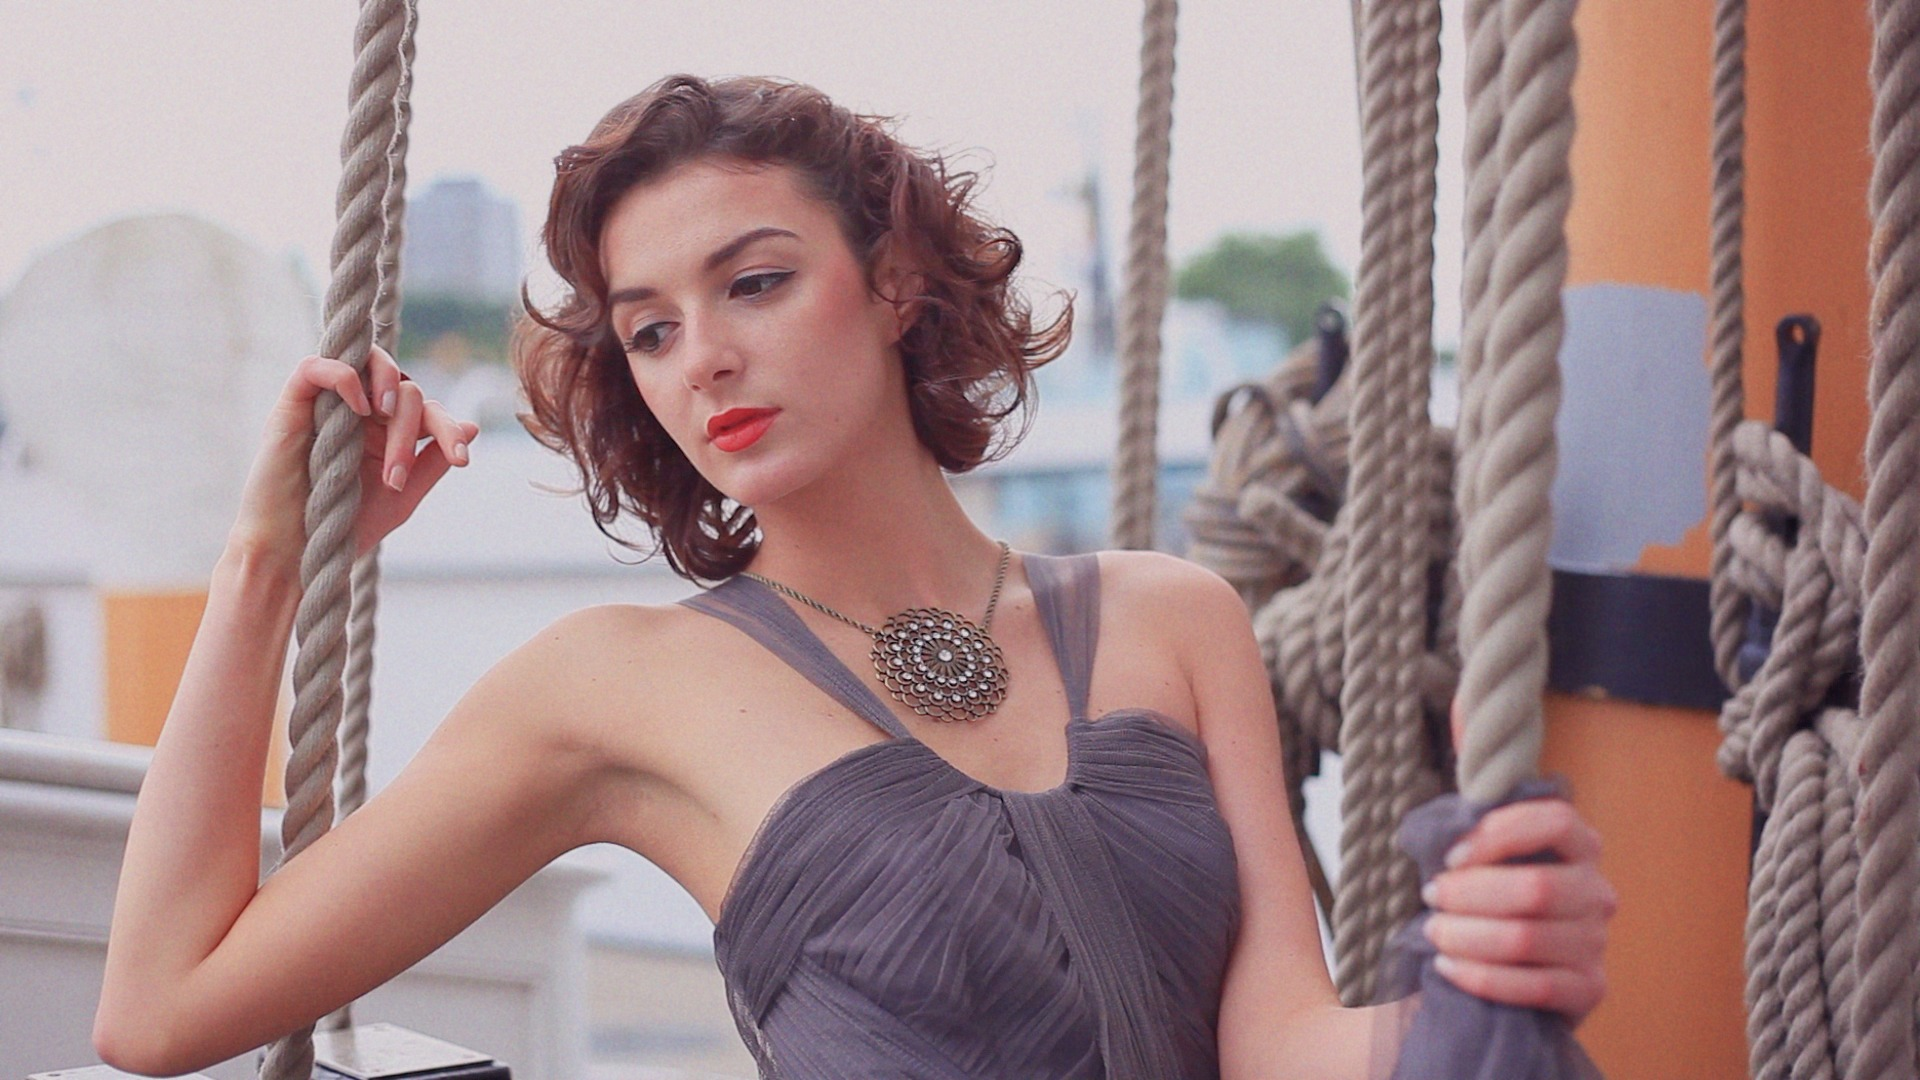 L'Oréal Paris LUMIERE Cannes '14 inspired fashion film